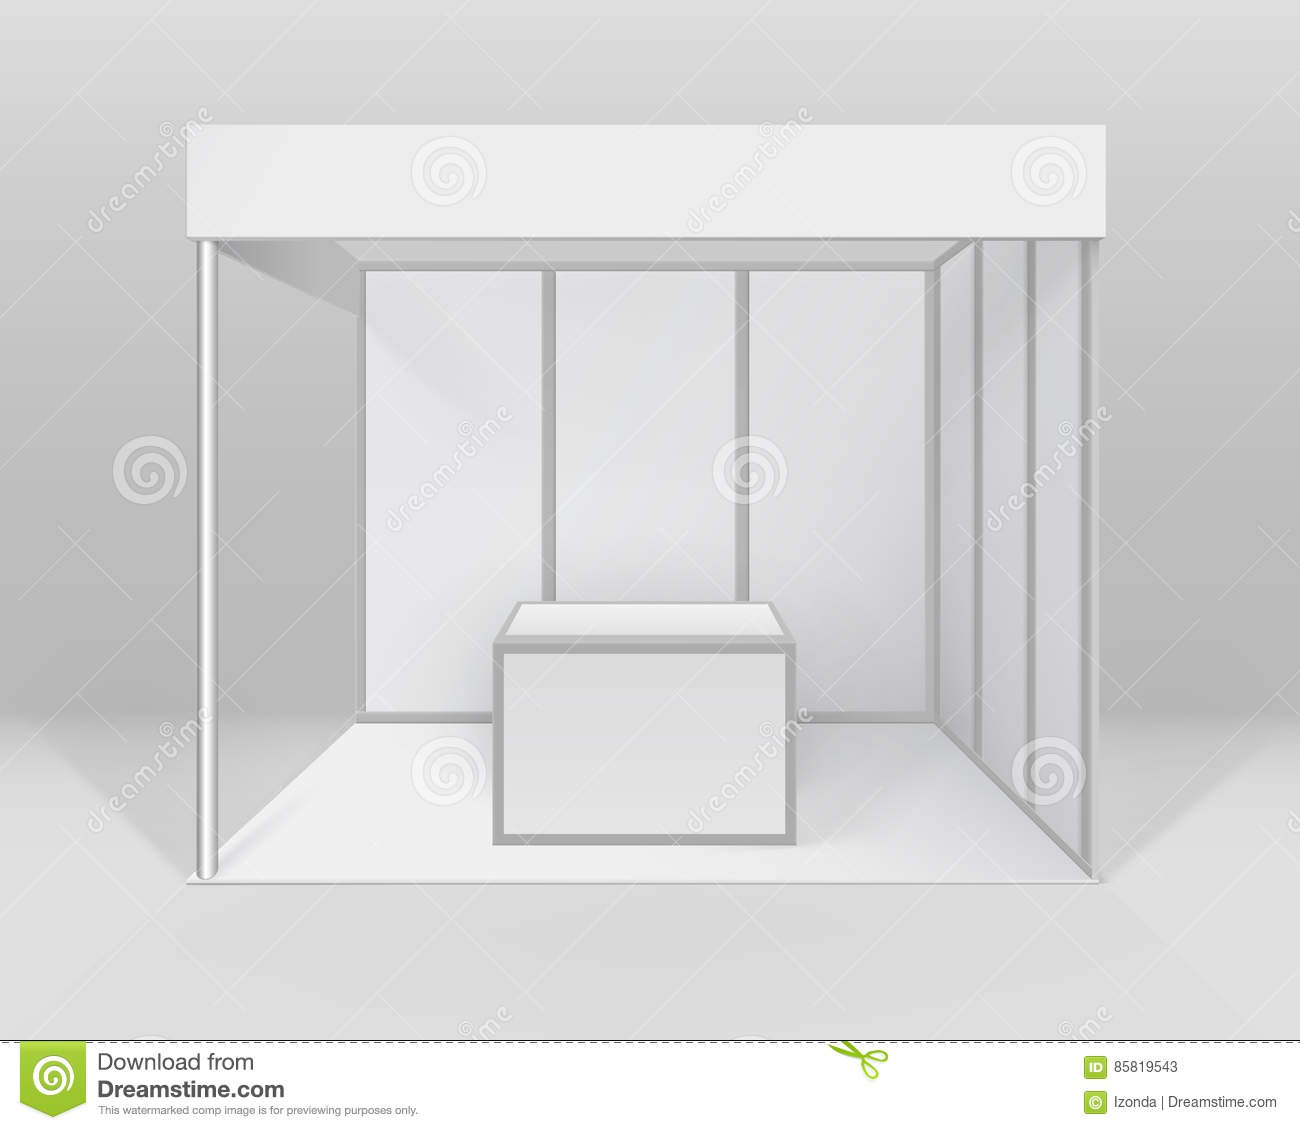 Exhibition Stand Design Vector : Blank white trade exhibition stand vector illustration